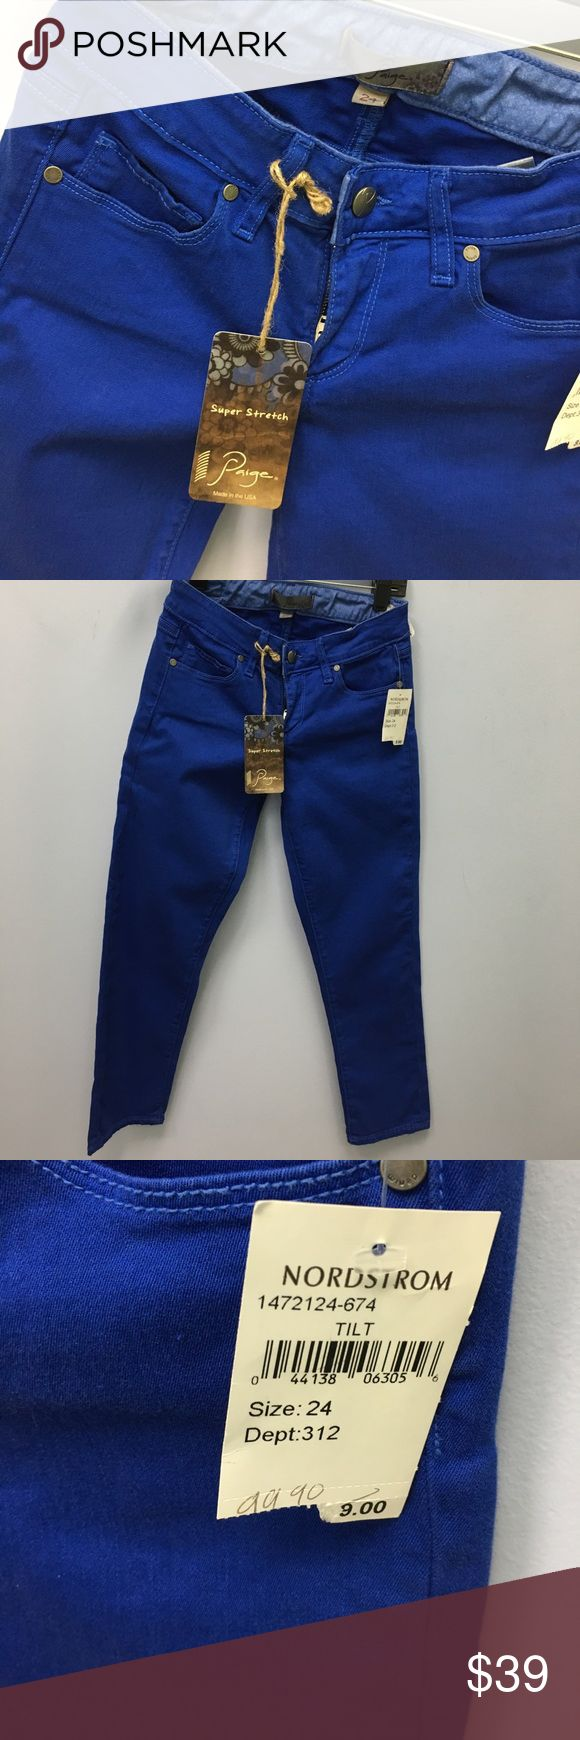 Page crop size 24 These brand-new page jeans from Nordstrom or size 24, style Roxbury crop, classic rise ,cropped skinny by Paige. The original sale price on these was $99 Paige Jeans Pants Ankle & Cropped